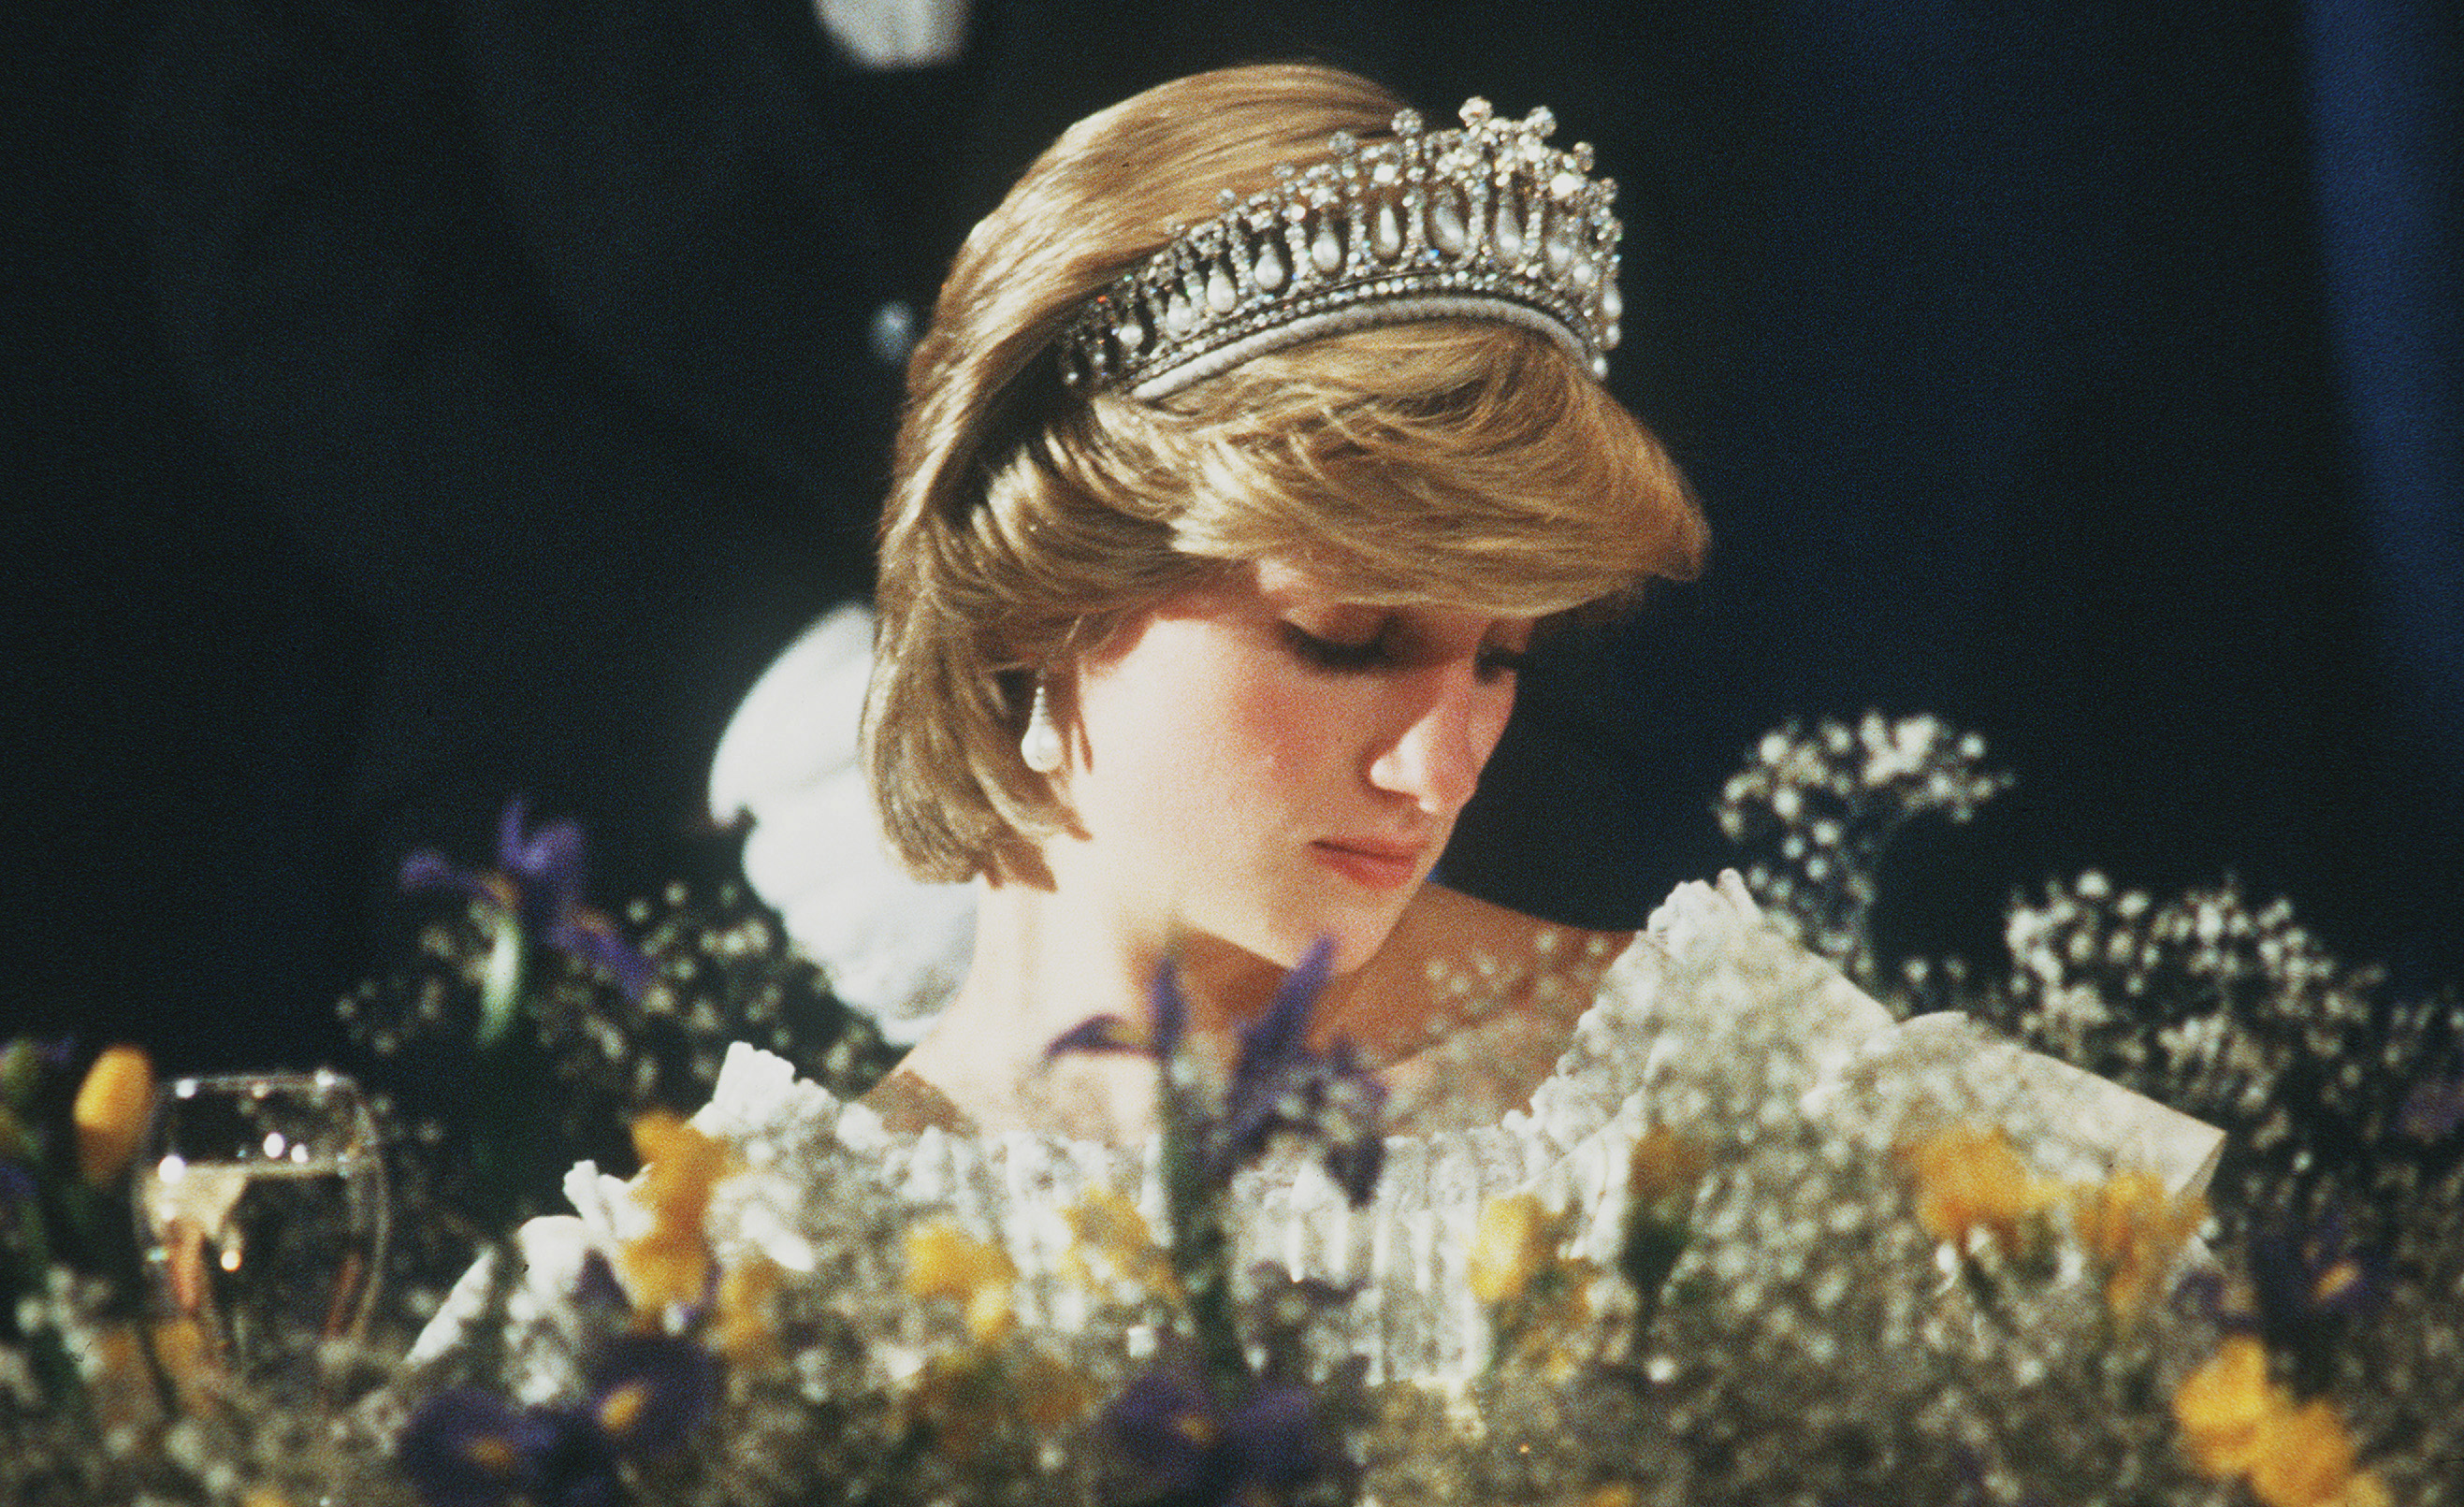 Diana, Princess of Wales wears the Cambridge Lover's Knot tiara (Queen Mary's Tiara) and diamond earrings during a banquet on April 29, 1983 in Aukland, New Zealand.